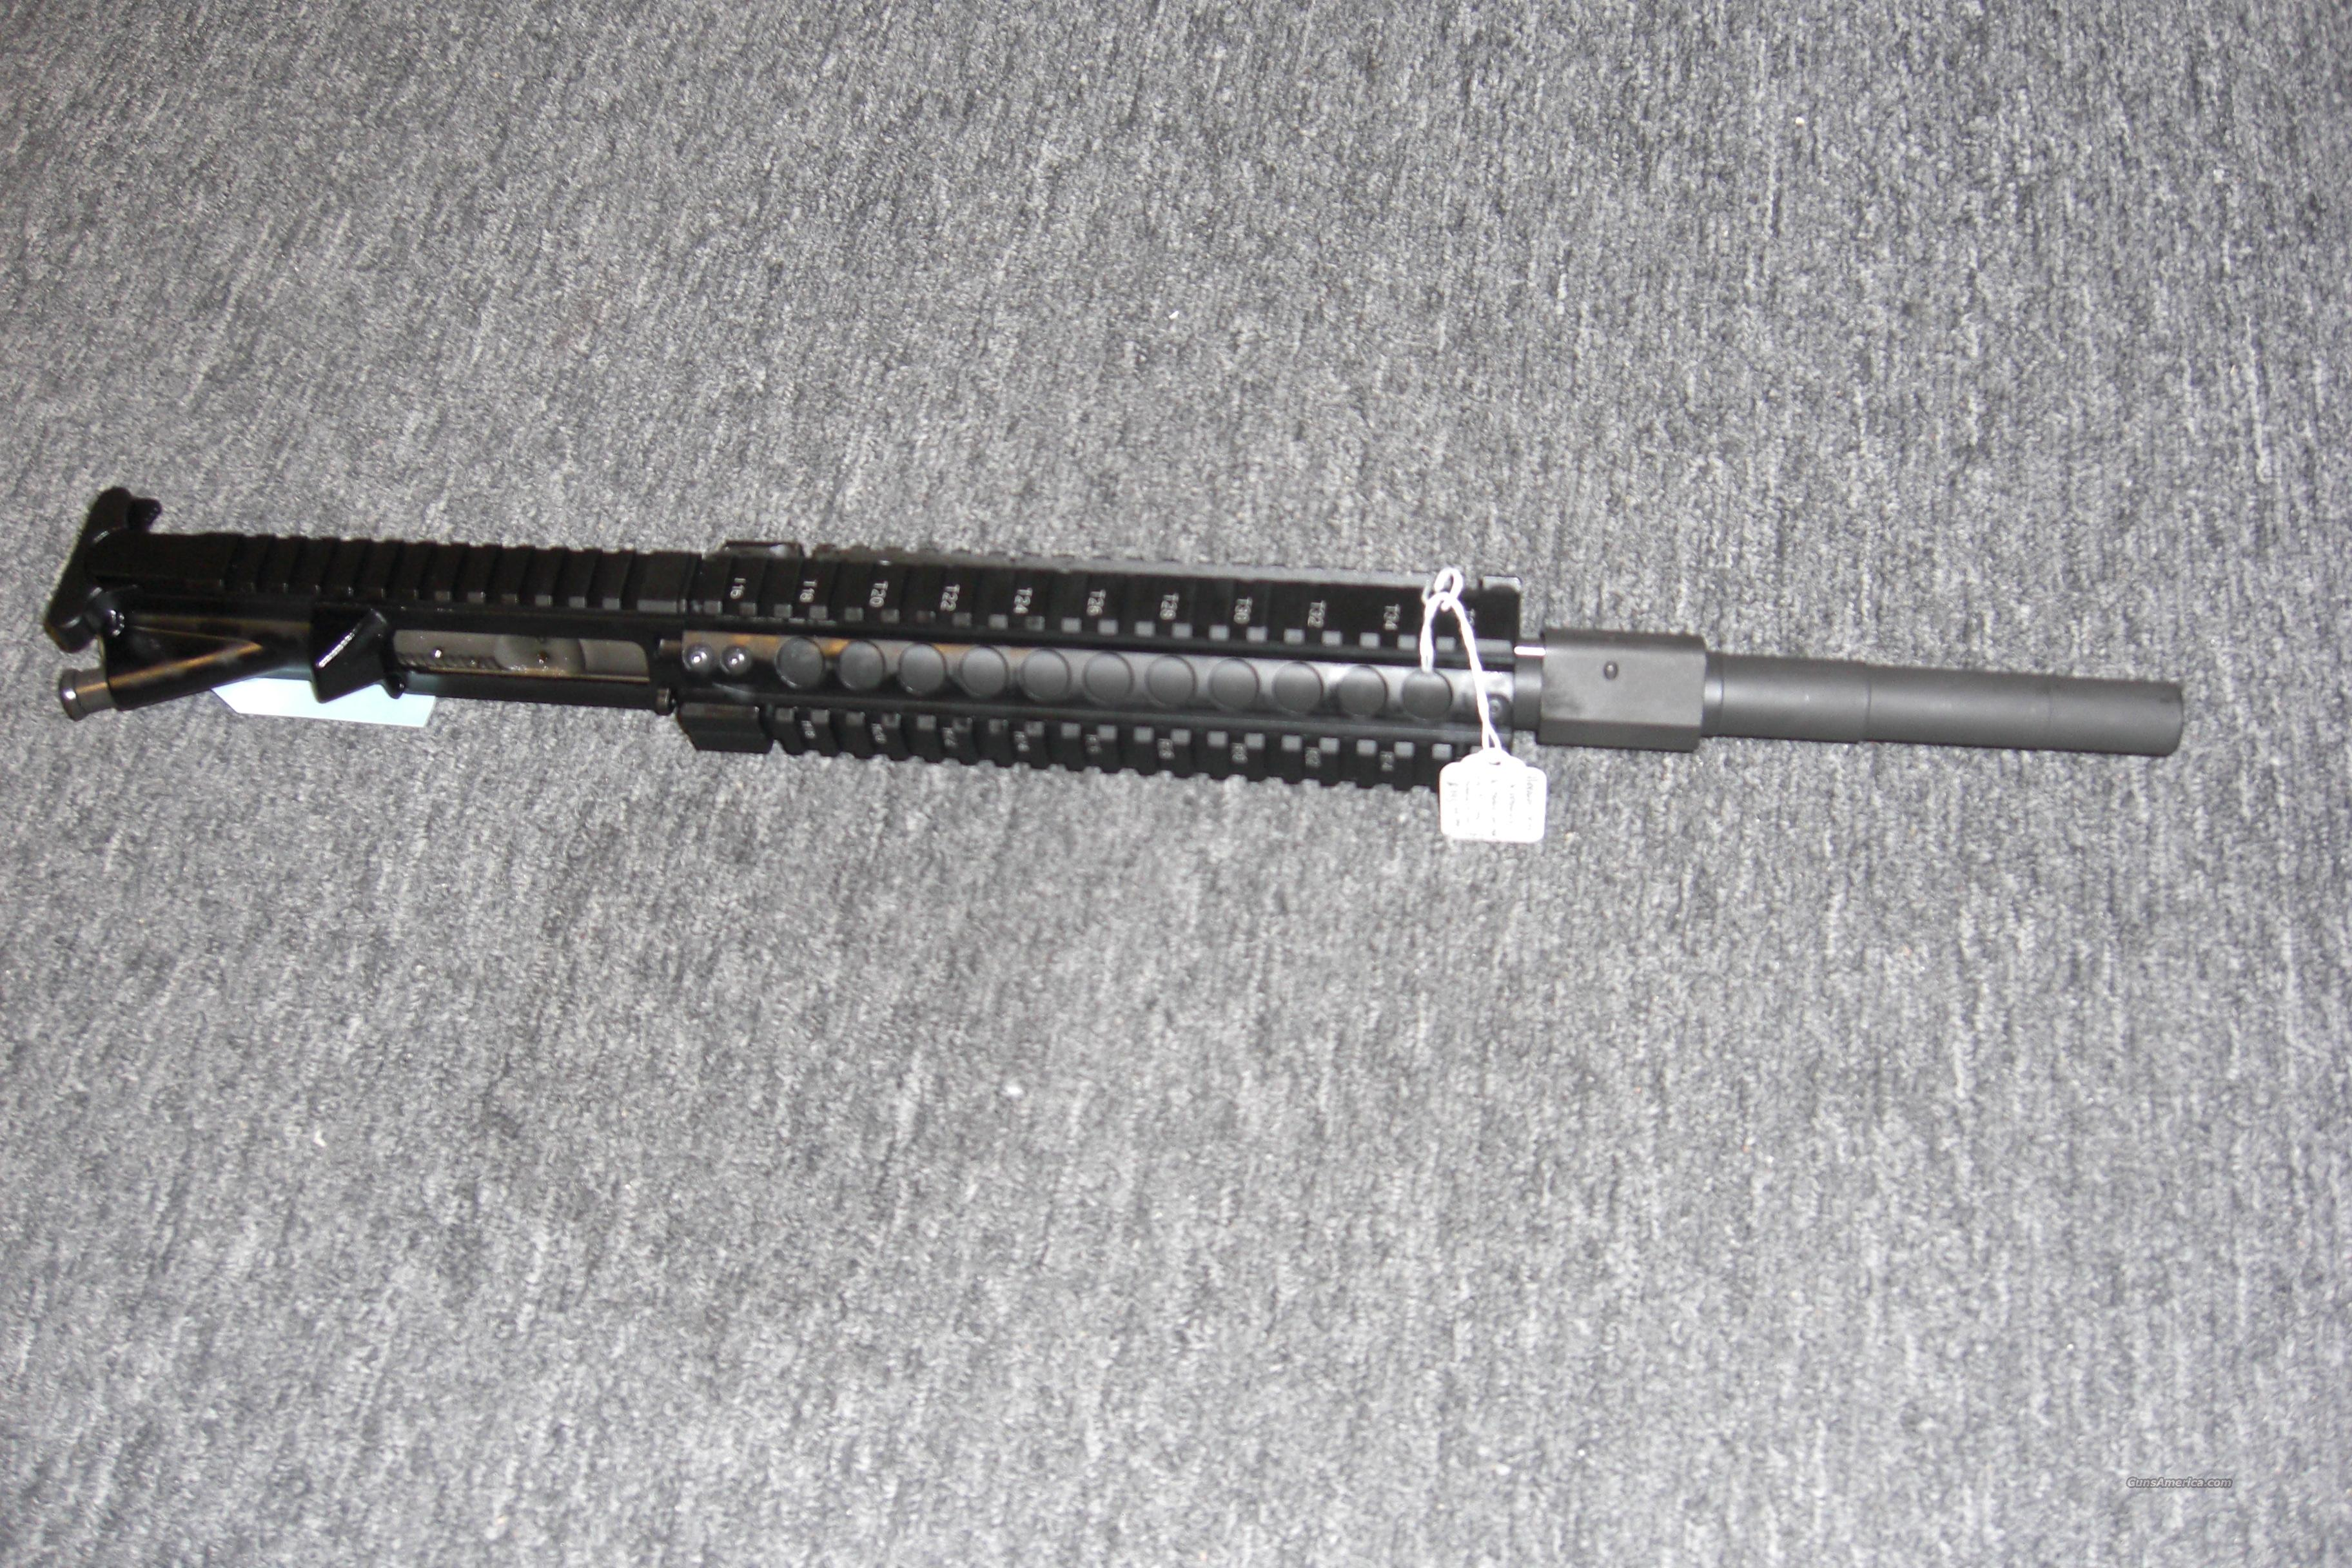 Alexander Arms .50 BEOWULF upper w/quad rail  Non-Guns > Barrels